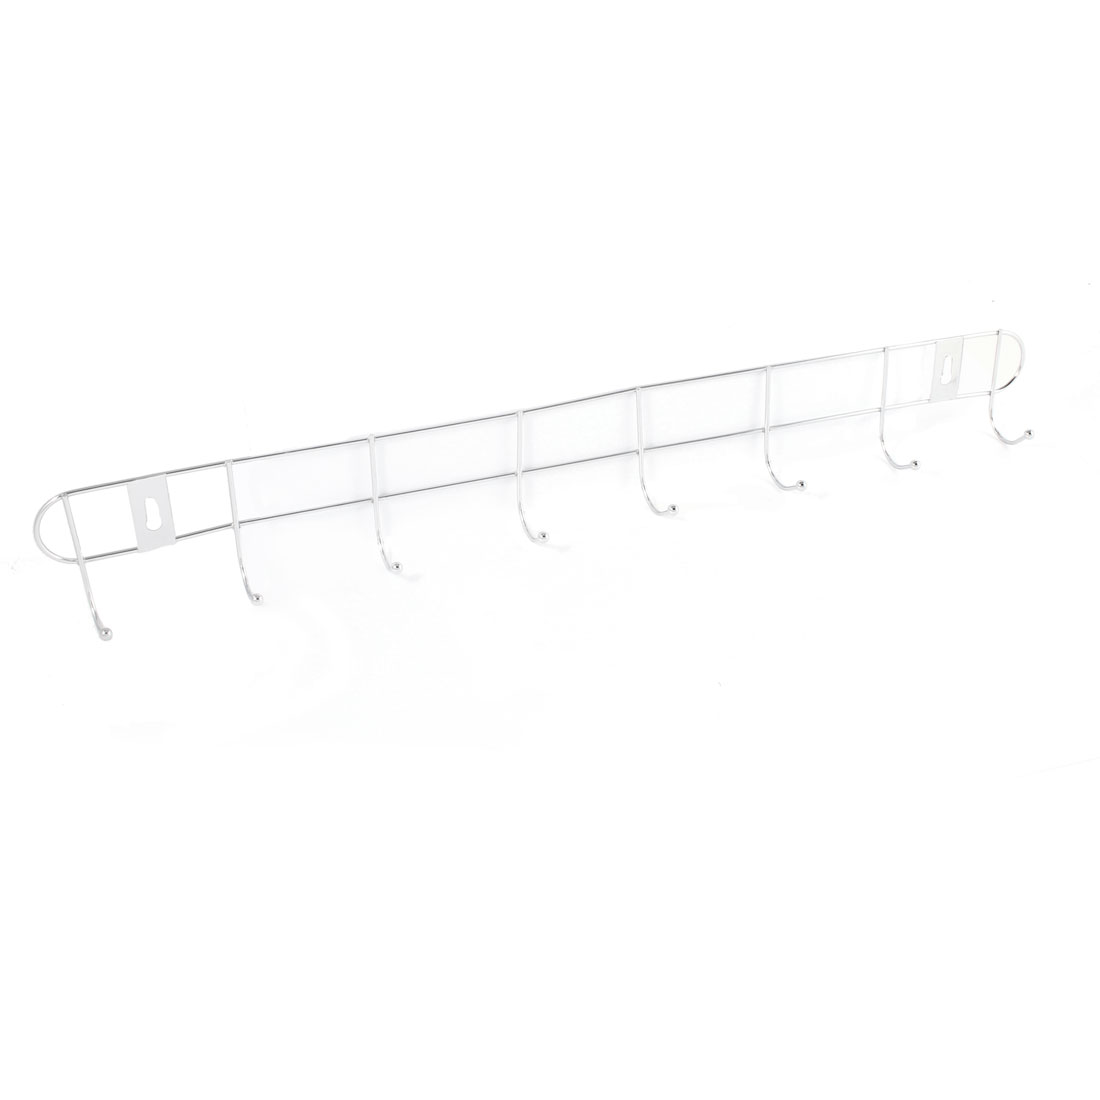 Silver Tone Ball End 8 Hooks Stainless Steel Rack Clothes Towel Wall Hanger